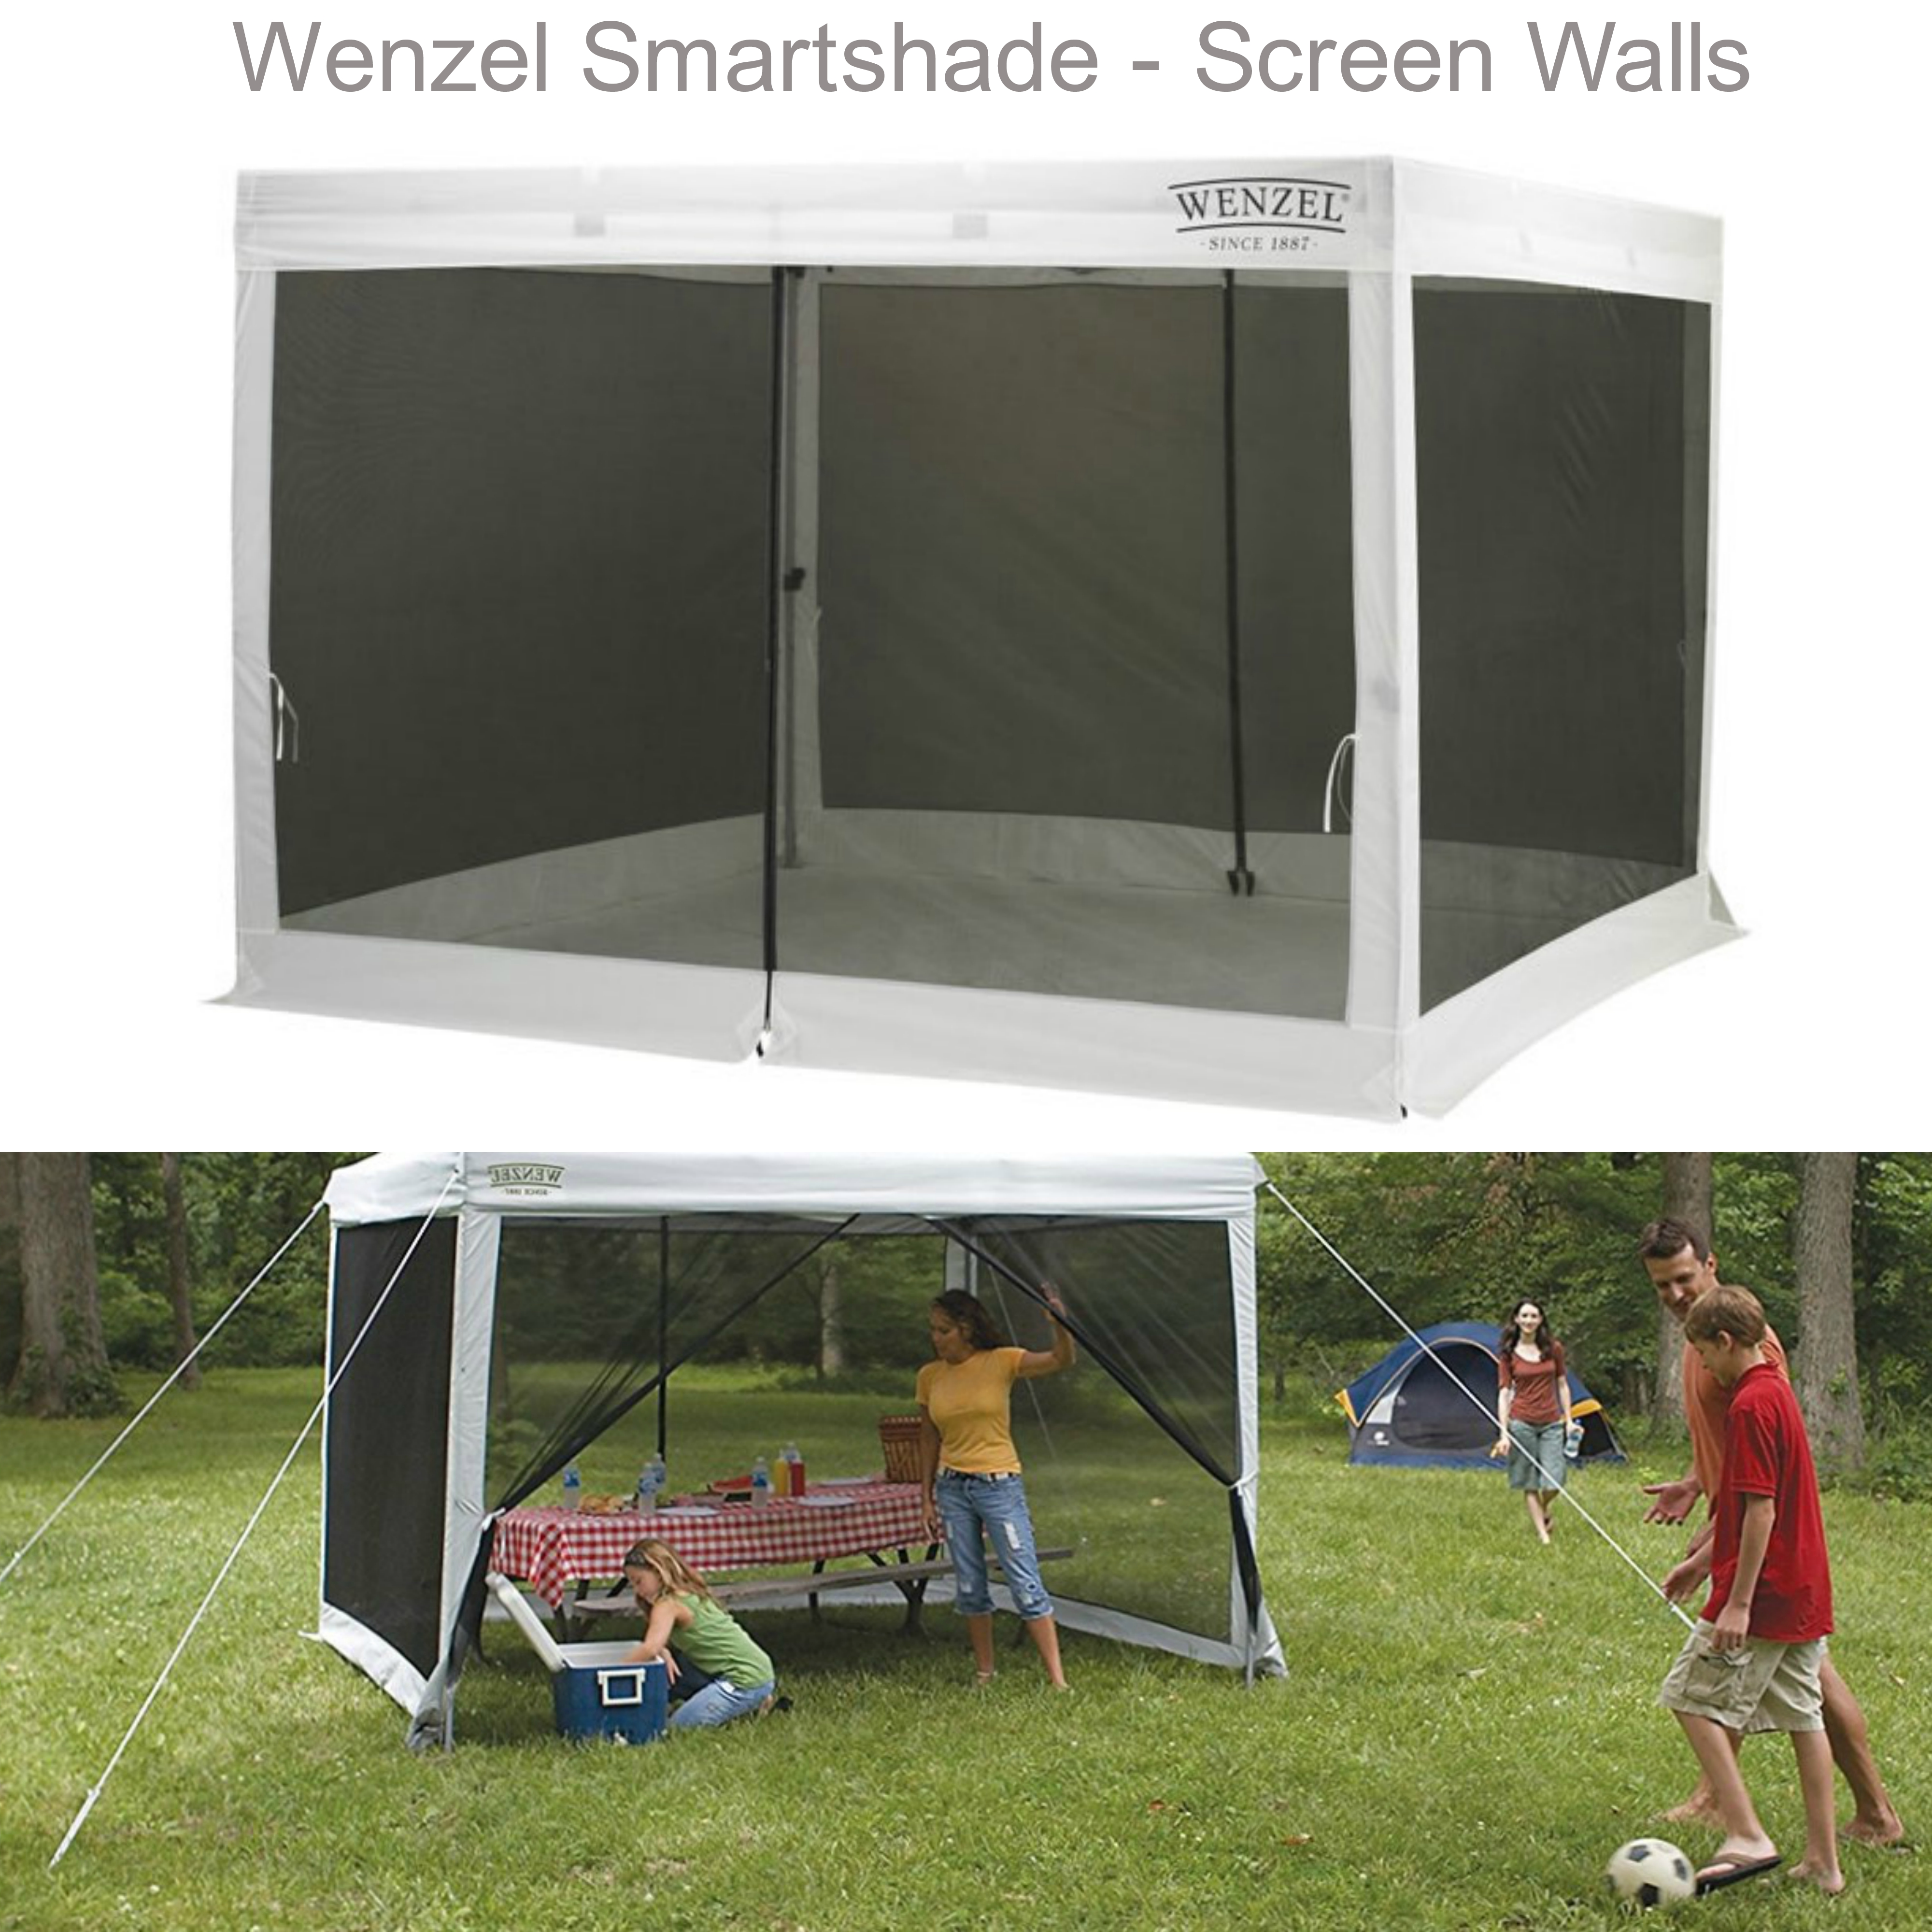 NEW Wenzel Strong Polyester SmartShade Screen Walls Insects Protector - 33049